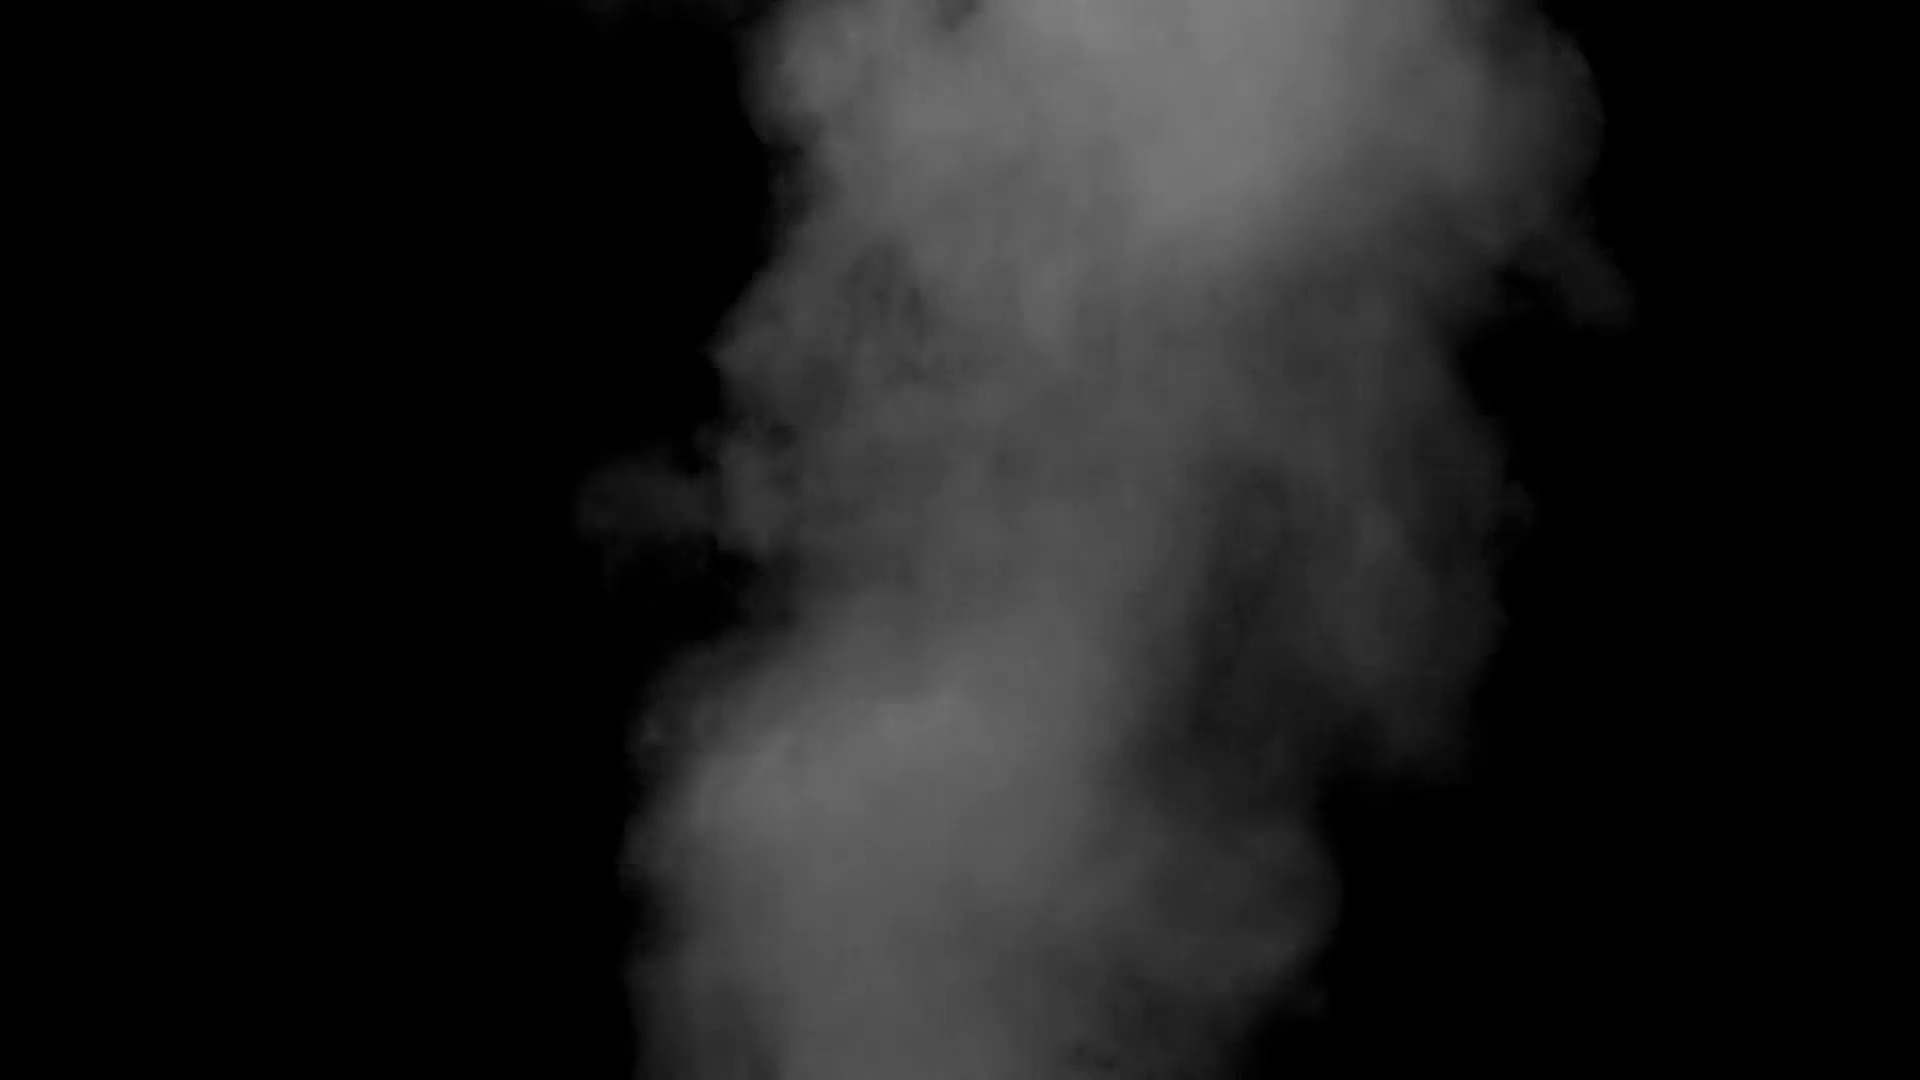 Subscription Library Grey smoke black background steam. Abstract smoke  background, desaturated grey steam shapes rising like